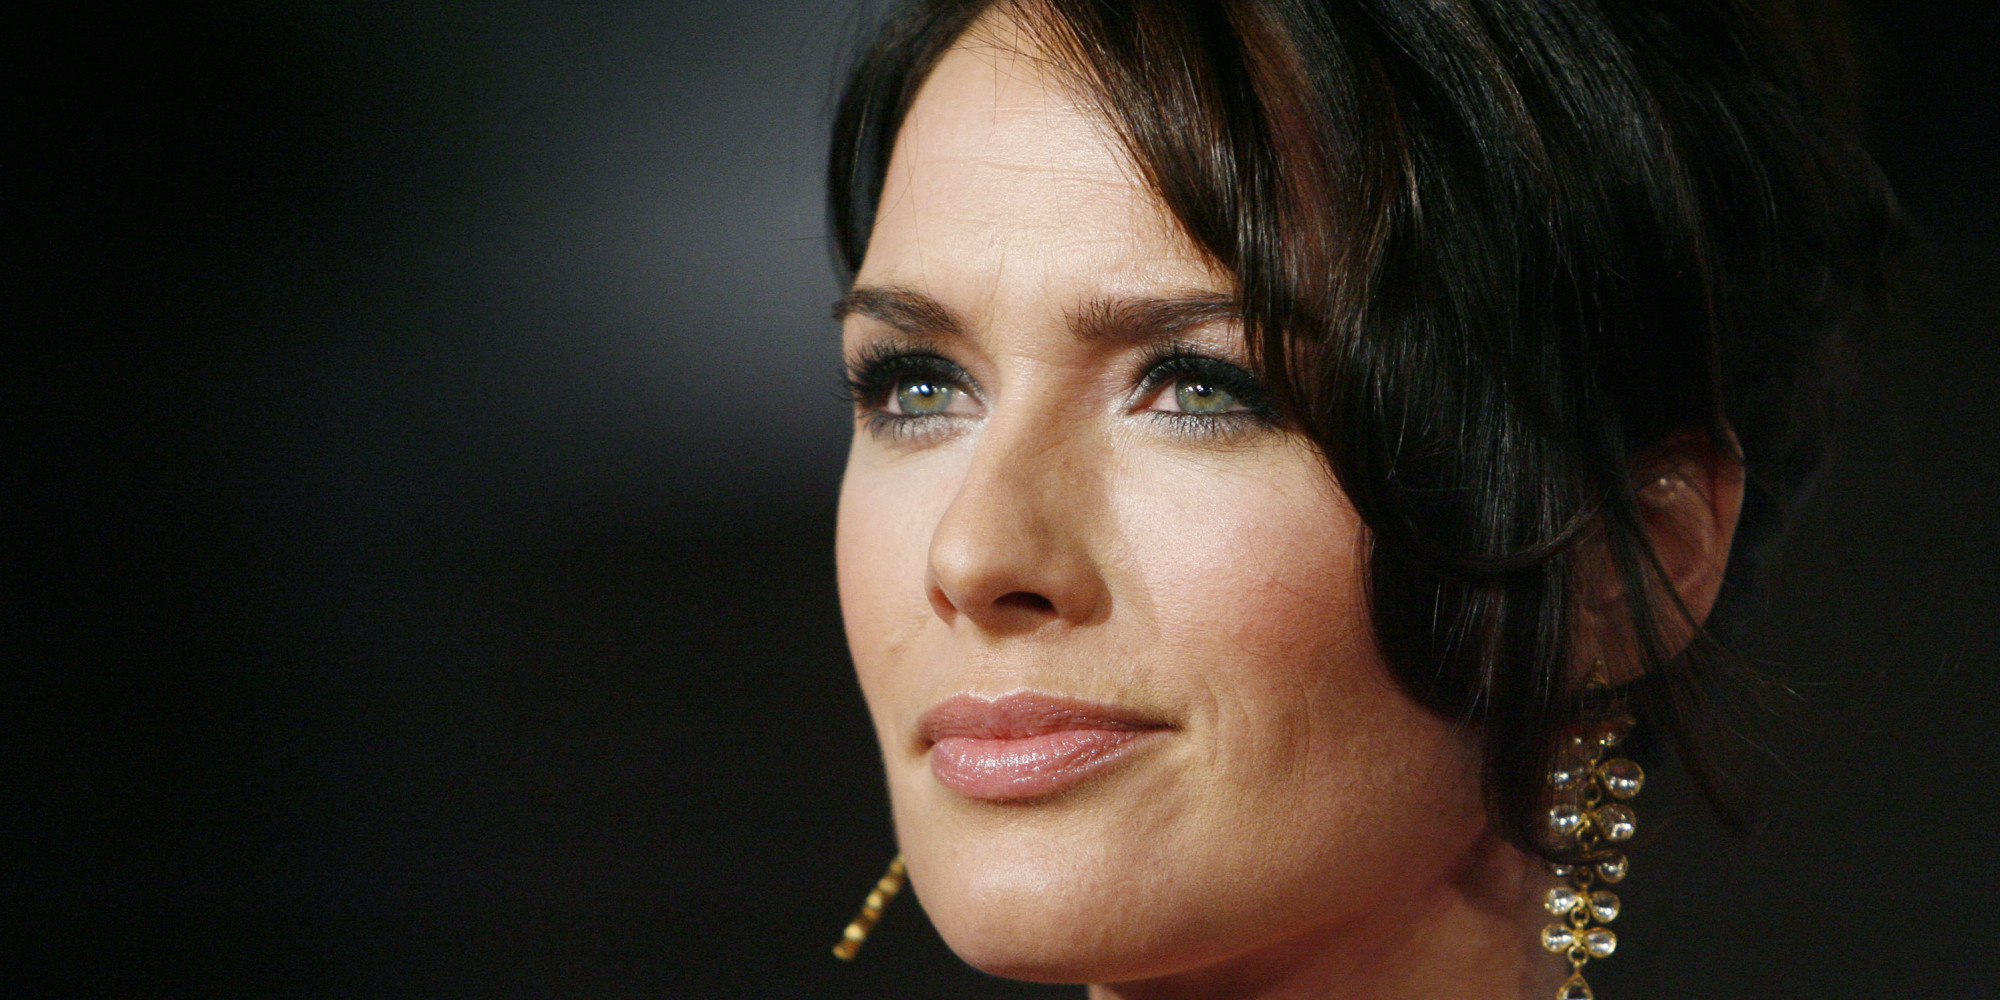 """Lena Headey arrives at the premiere of """"300"""" in Los Angeles, Monday, March 5, 2007. (AP Photo/Matt Sayles)"""